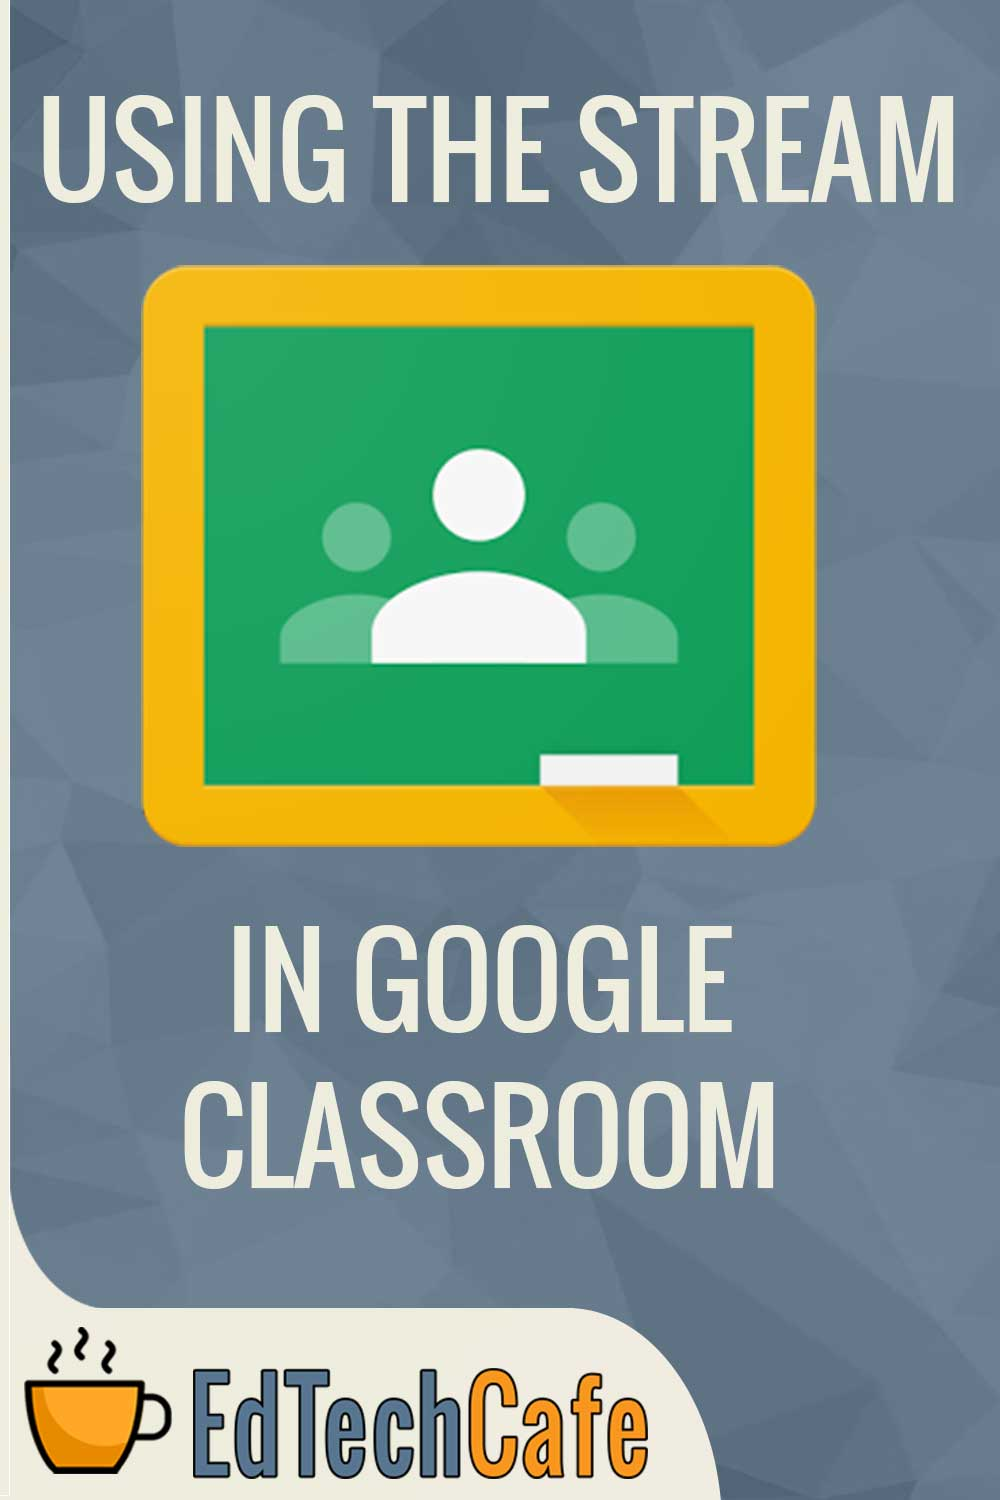 Using the Stream in Google Classroom